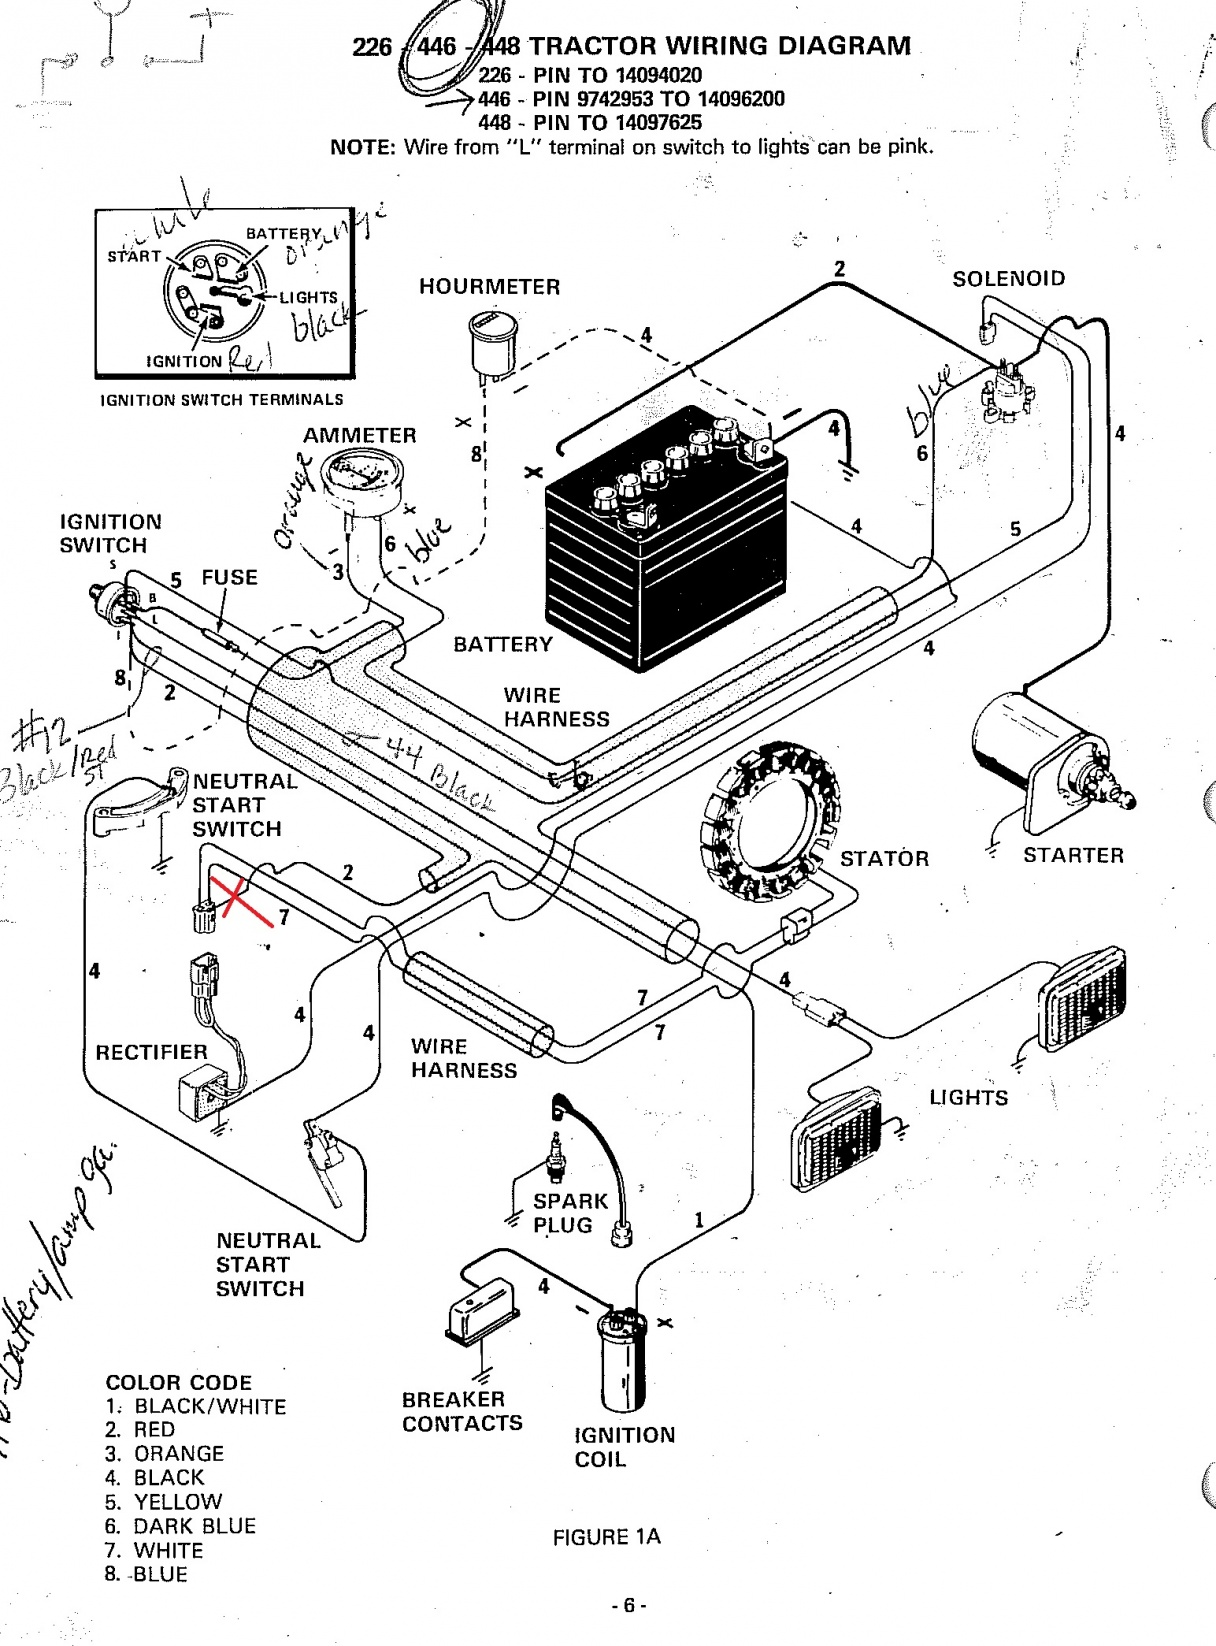 Case Ingersoll 446 Wiring Diagram Onan B48m Charging Problem The Friendliest Click Image For Larger Version Name Electrical Fix Views 774 Size